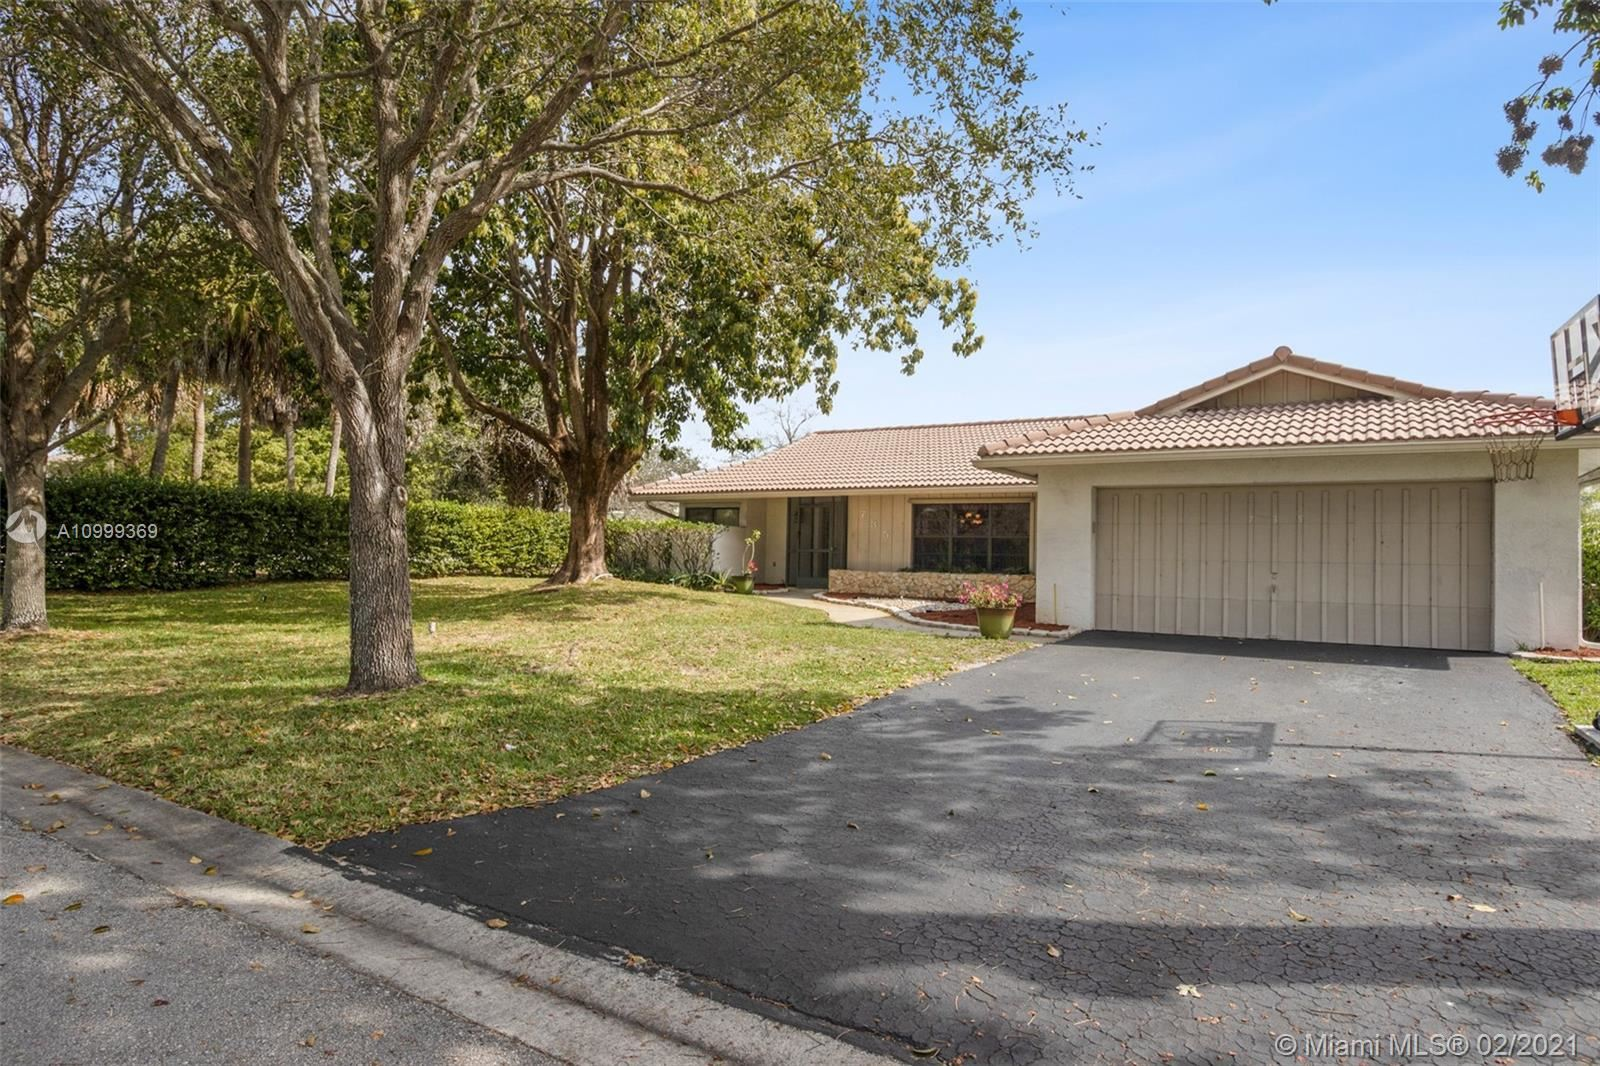 735 NW 99th Ter, Coral Springs, FL 33071 - #: A10999369